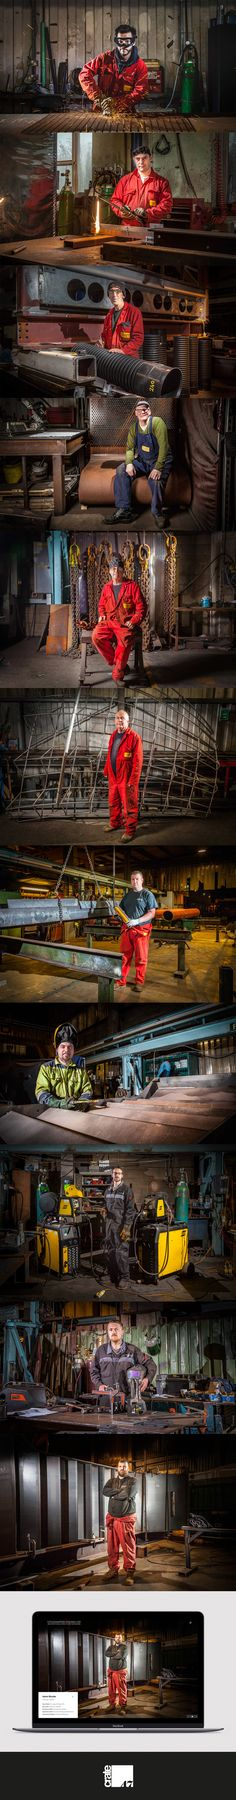 Crate47's new website for Littlehampton Welding included the portrait photography of every member of staff at their work stations. This has not only promoted their skills and craftsmanship to the wider world but also had the additional benefit of greater staff engagement.